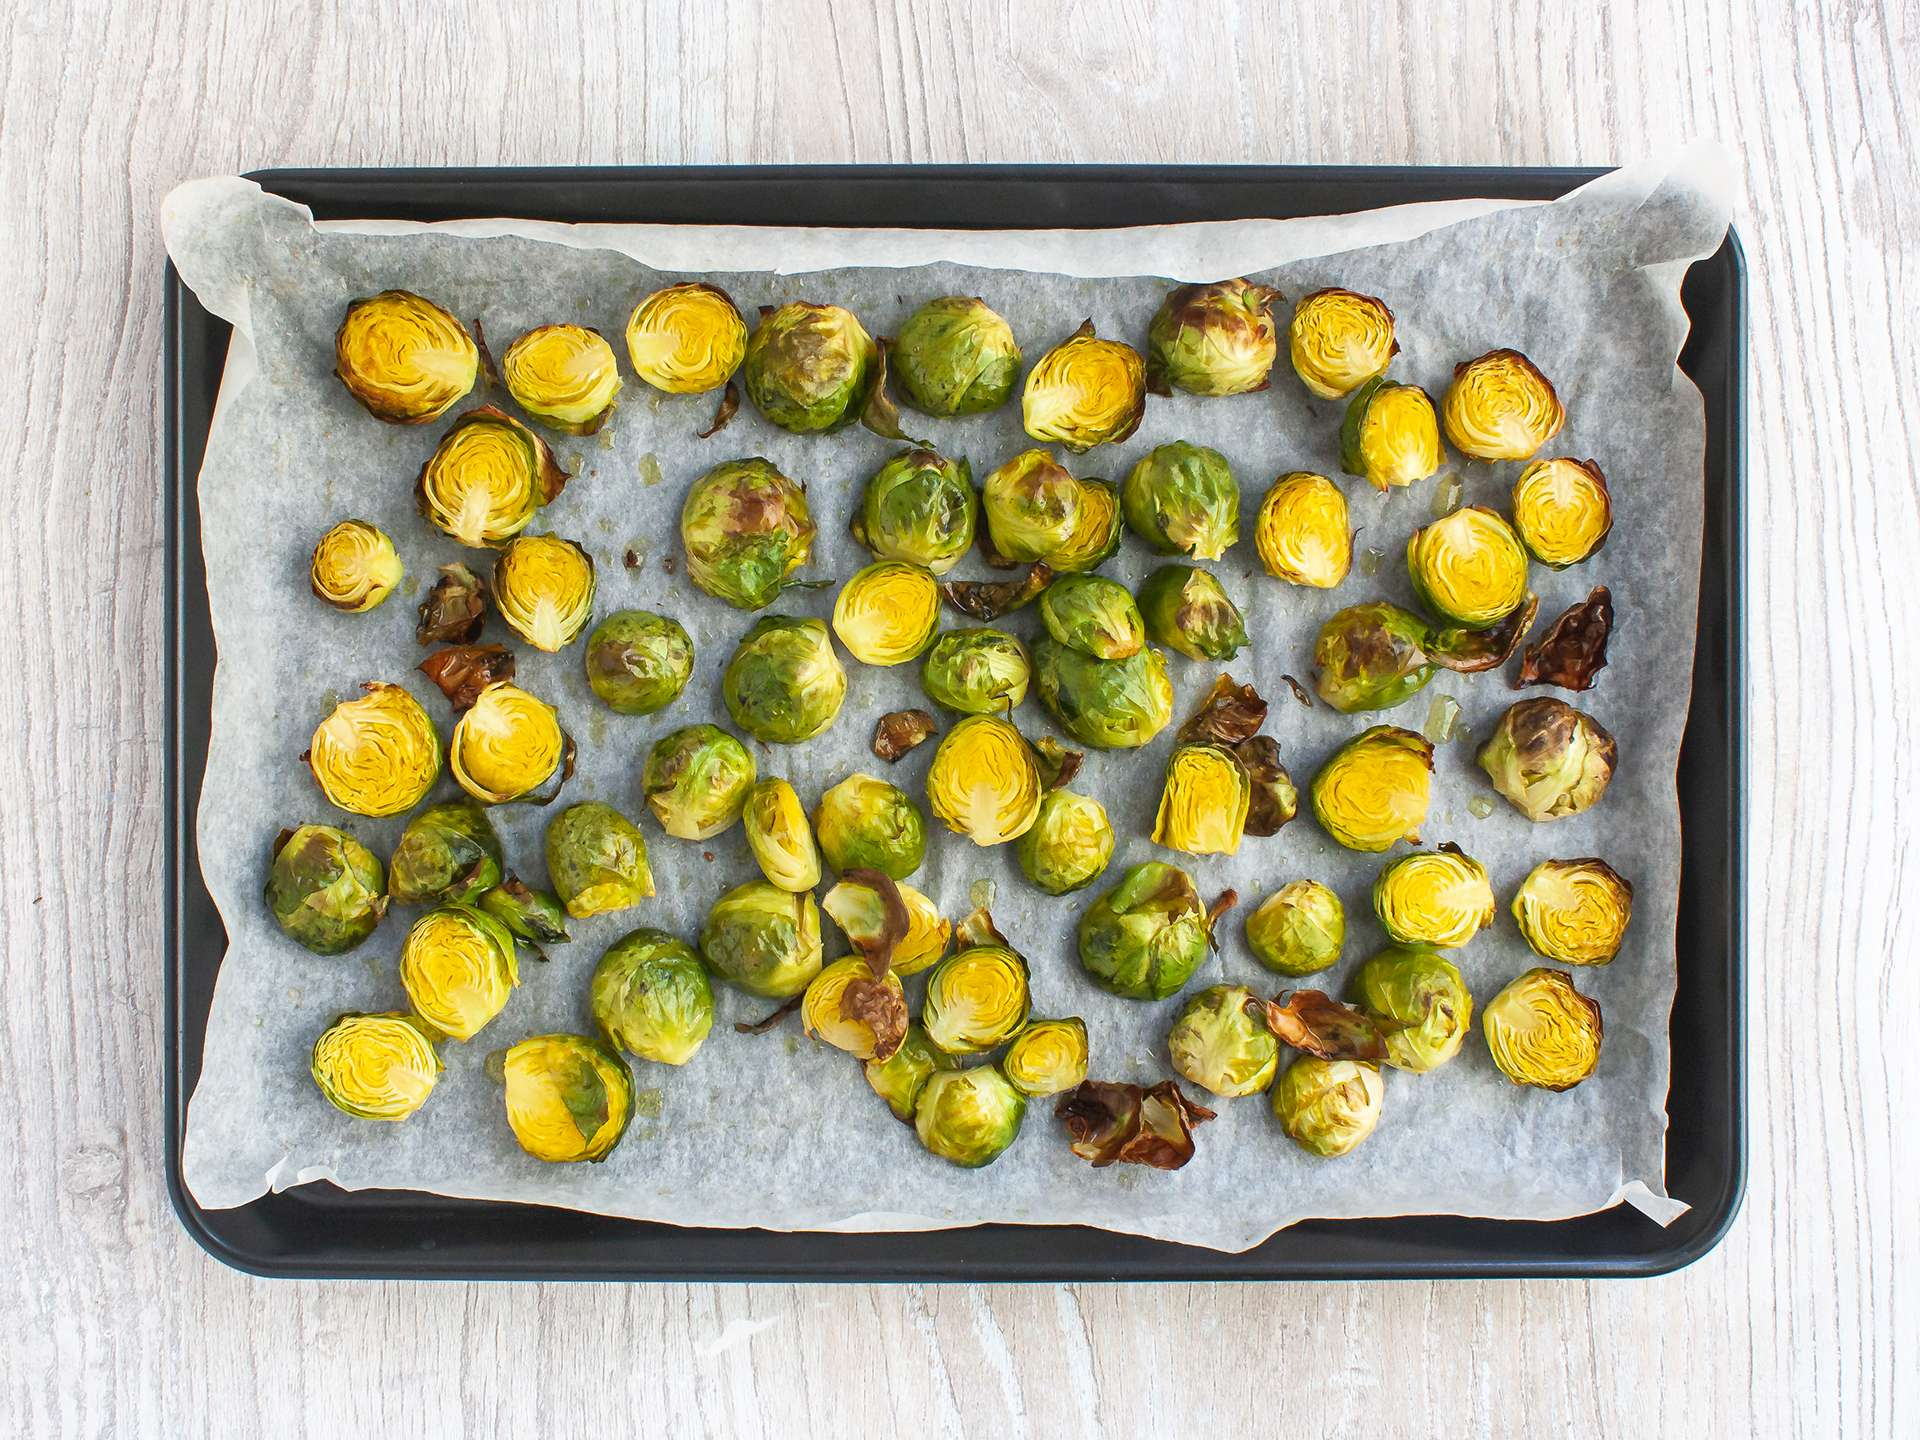 Step 1.1 of Chilli Lime Roasted Sprouts with Avocado Recipe